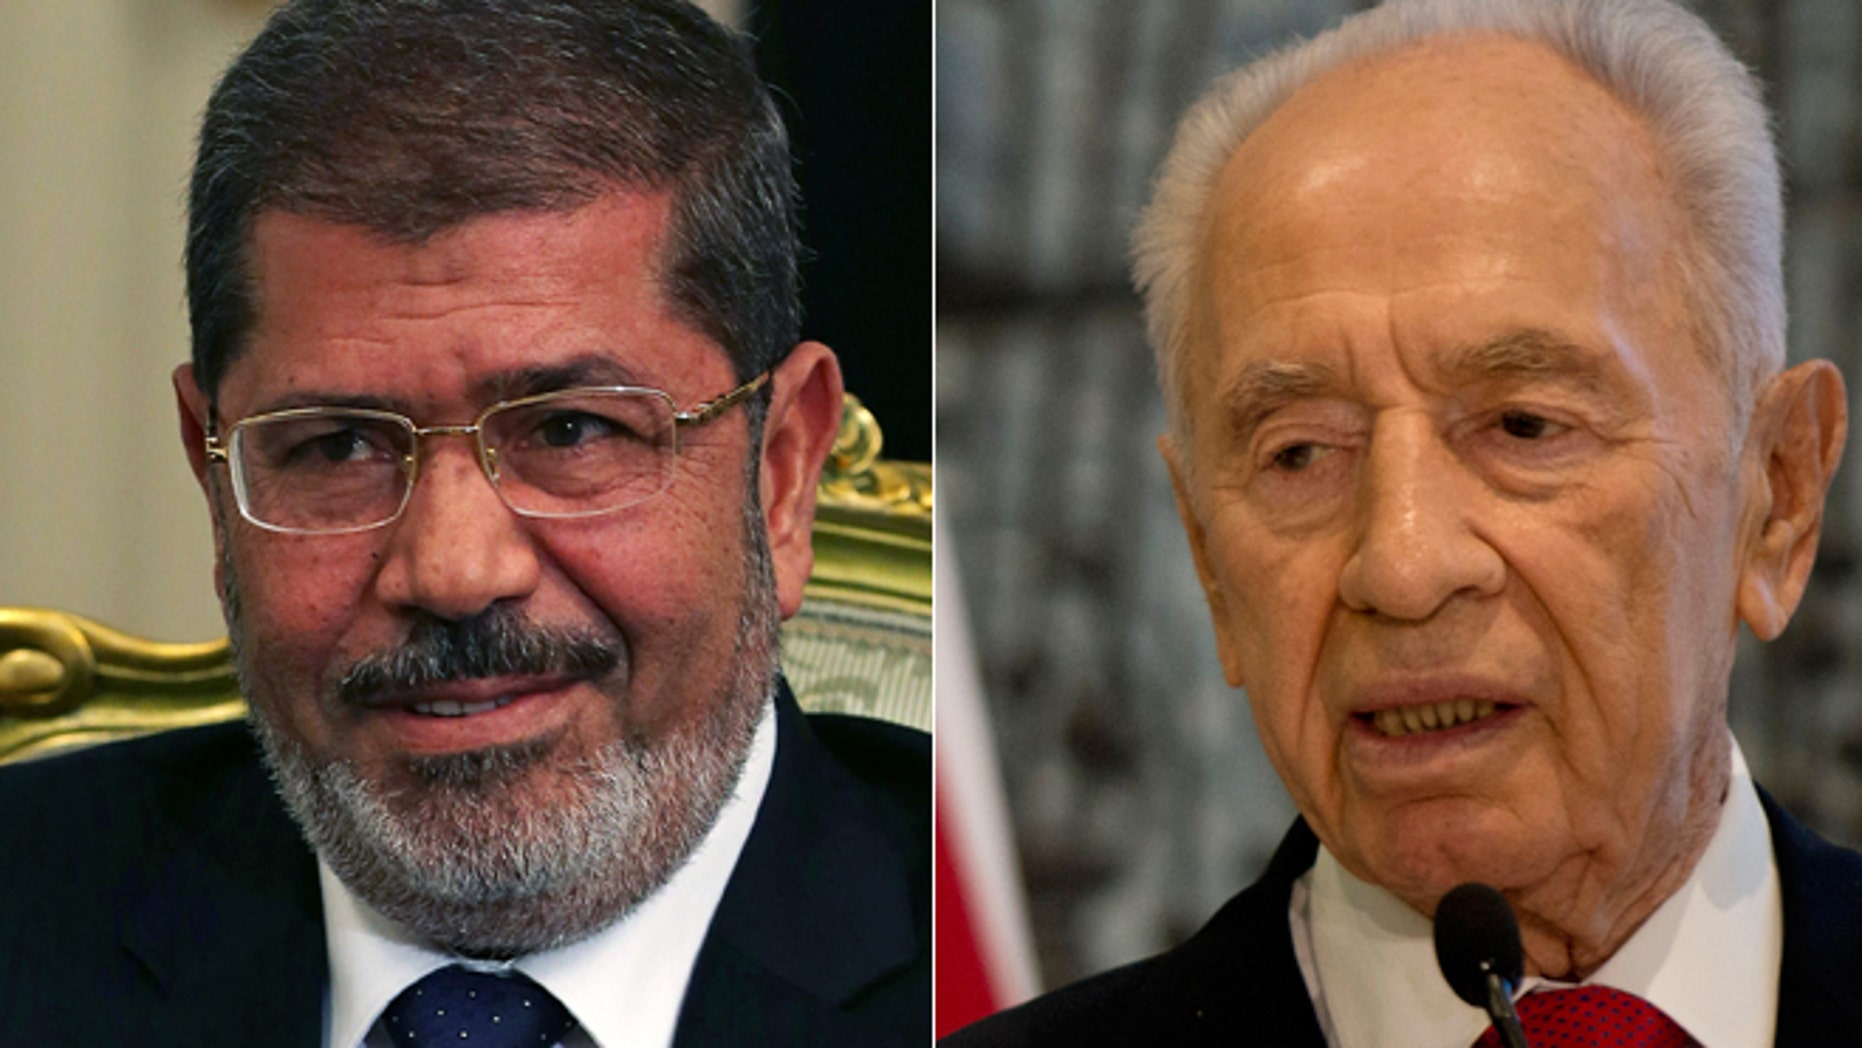 A spokesman for Egyptian President Mohamed Morsi, left, denies sending a letter hoping for peace in the region to Israel's President Shimon Peres, right.